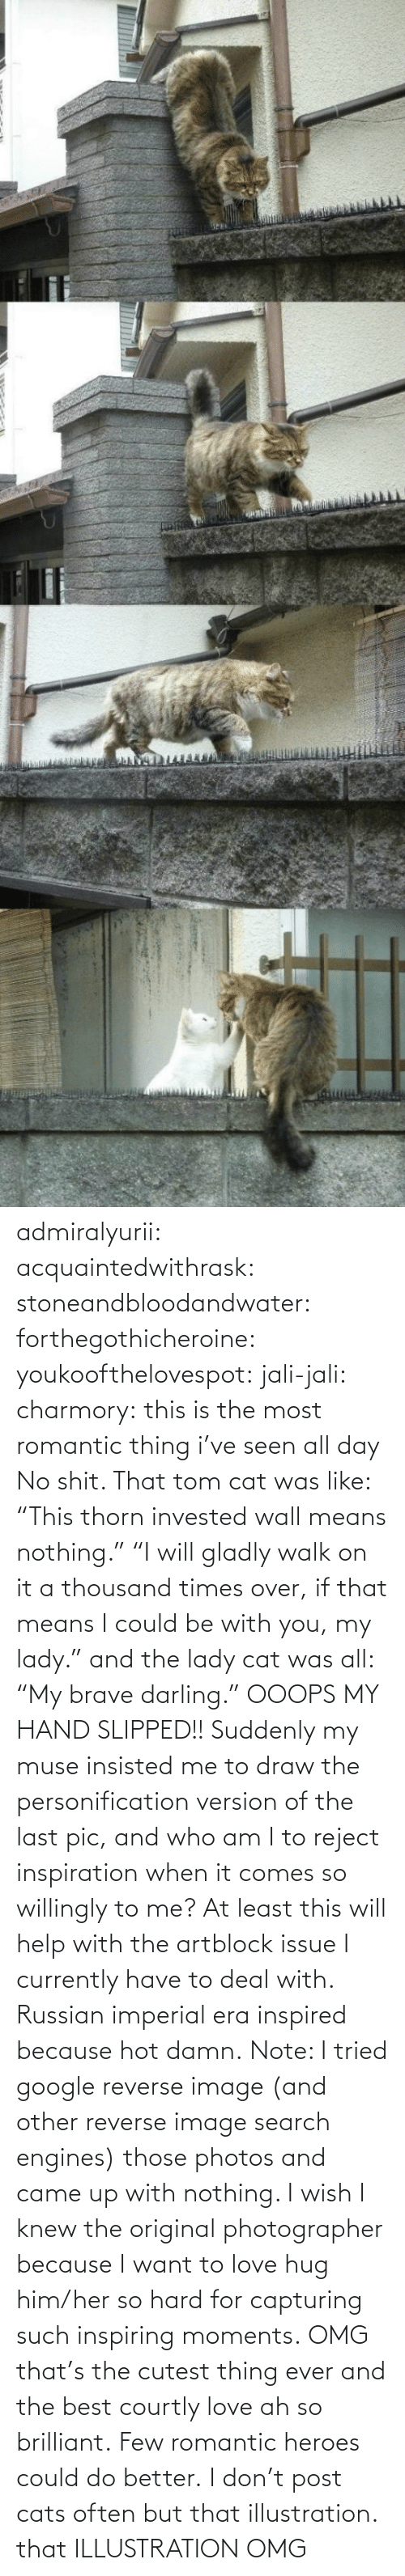 "all: admiralyurii: acquaintedwithrask:  stoneandbloodandwater:  forthegothicheroine:  youkoofthelovespot:  jali-jali:  charmory:  this is the most romantic thing i've seen all day  No shit. That tom cat was like: ""This thorn invested wall means nothing."" ""I will gladly walk on it a thousand times over, if that means I could be with you, my lady."" and the lady cat was all: ""My brave darling."" OOOPS MY HAND SLIPPED!!  Suddenly my muse insisted me to draw the personification version of the last pic, and who am I to reject inspiration when it comes so willingly to me? At least this will help with the artblock issue I currently have to deal with. Russian imperial era inspired because hot damn. Note: I tried google reverse image (and other reverse image search engines) those photos and came up with nothing. I wish I knew the original photographer because I want to love hug him/her so hard for capturing such inspiring moments.  OMG that's the cutest thing ever and the best courtly love ah so brilliant.  Few romantic heroes could do better.  I don't post cats often but that illustration.  that ILLUSTRATION    OMG"